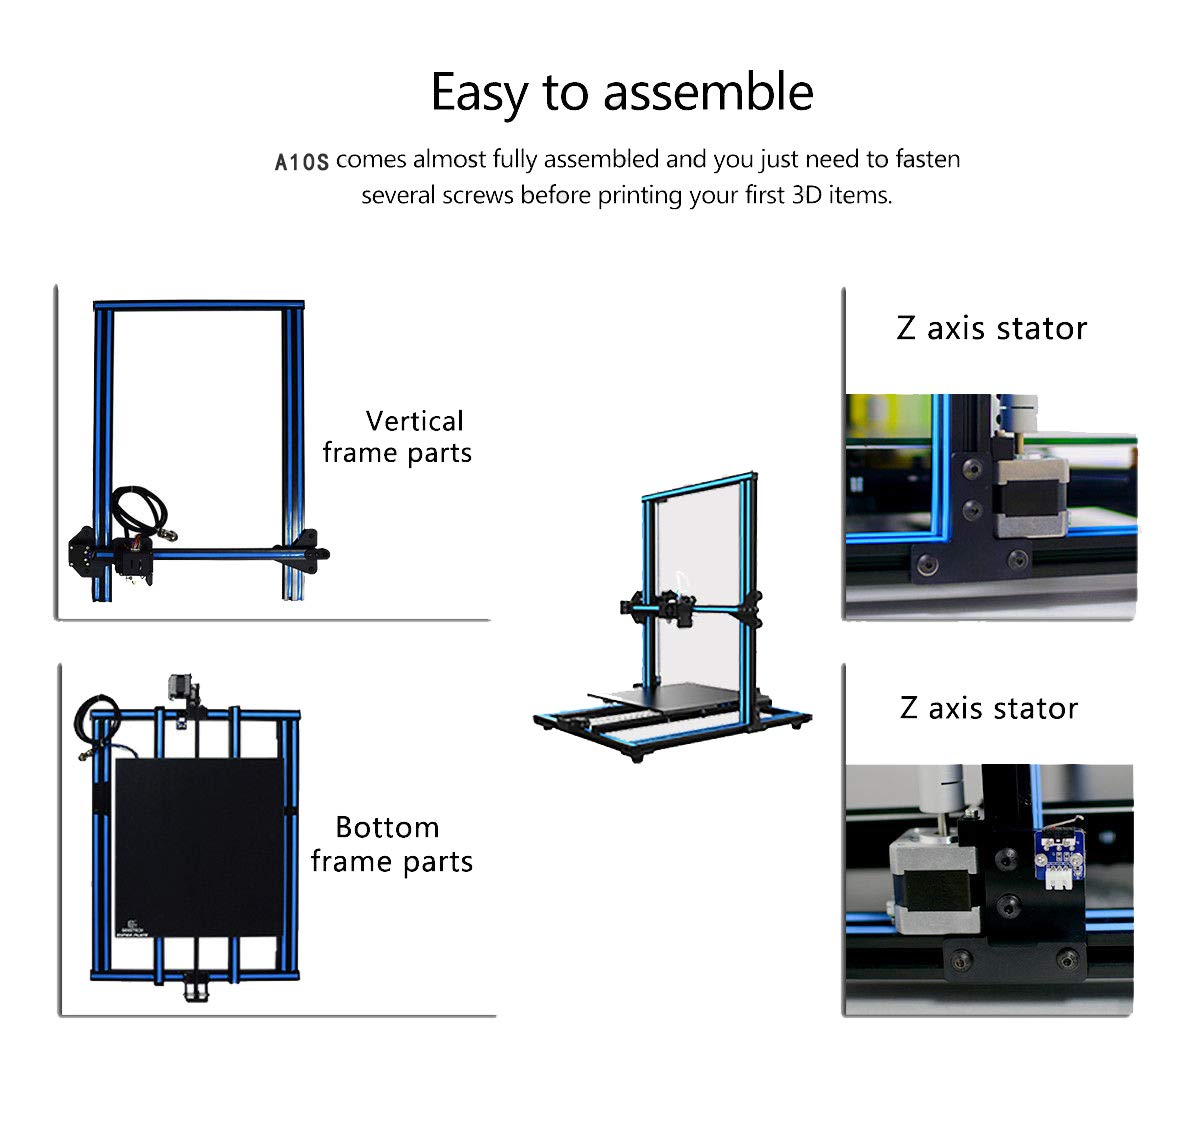 GUCOCO Newest CTC 3D Printer A10S Aluminum Frame High Accuracy A10S 3D Printers Kit With Free ABS//PLA Filament and TF Card Printing Size-300x300x400mm A10S 3D Printer